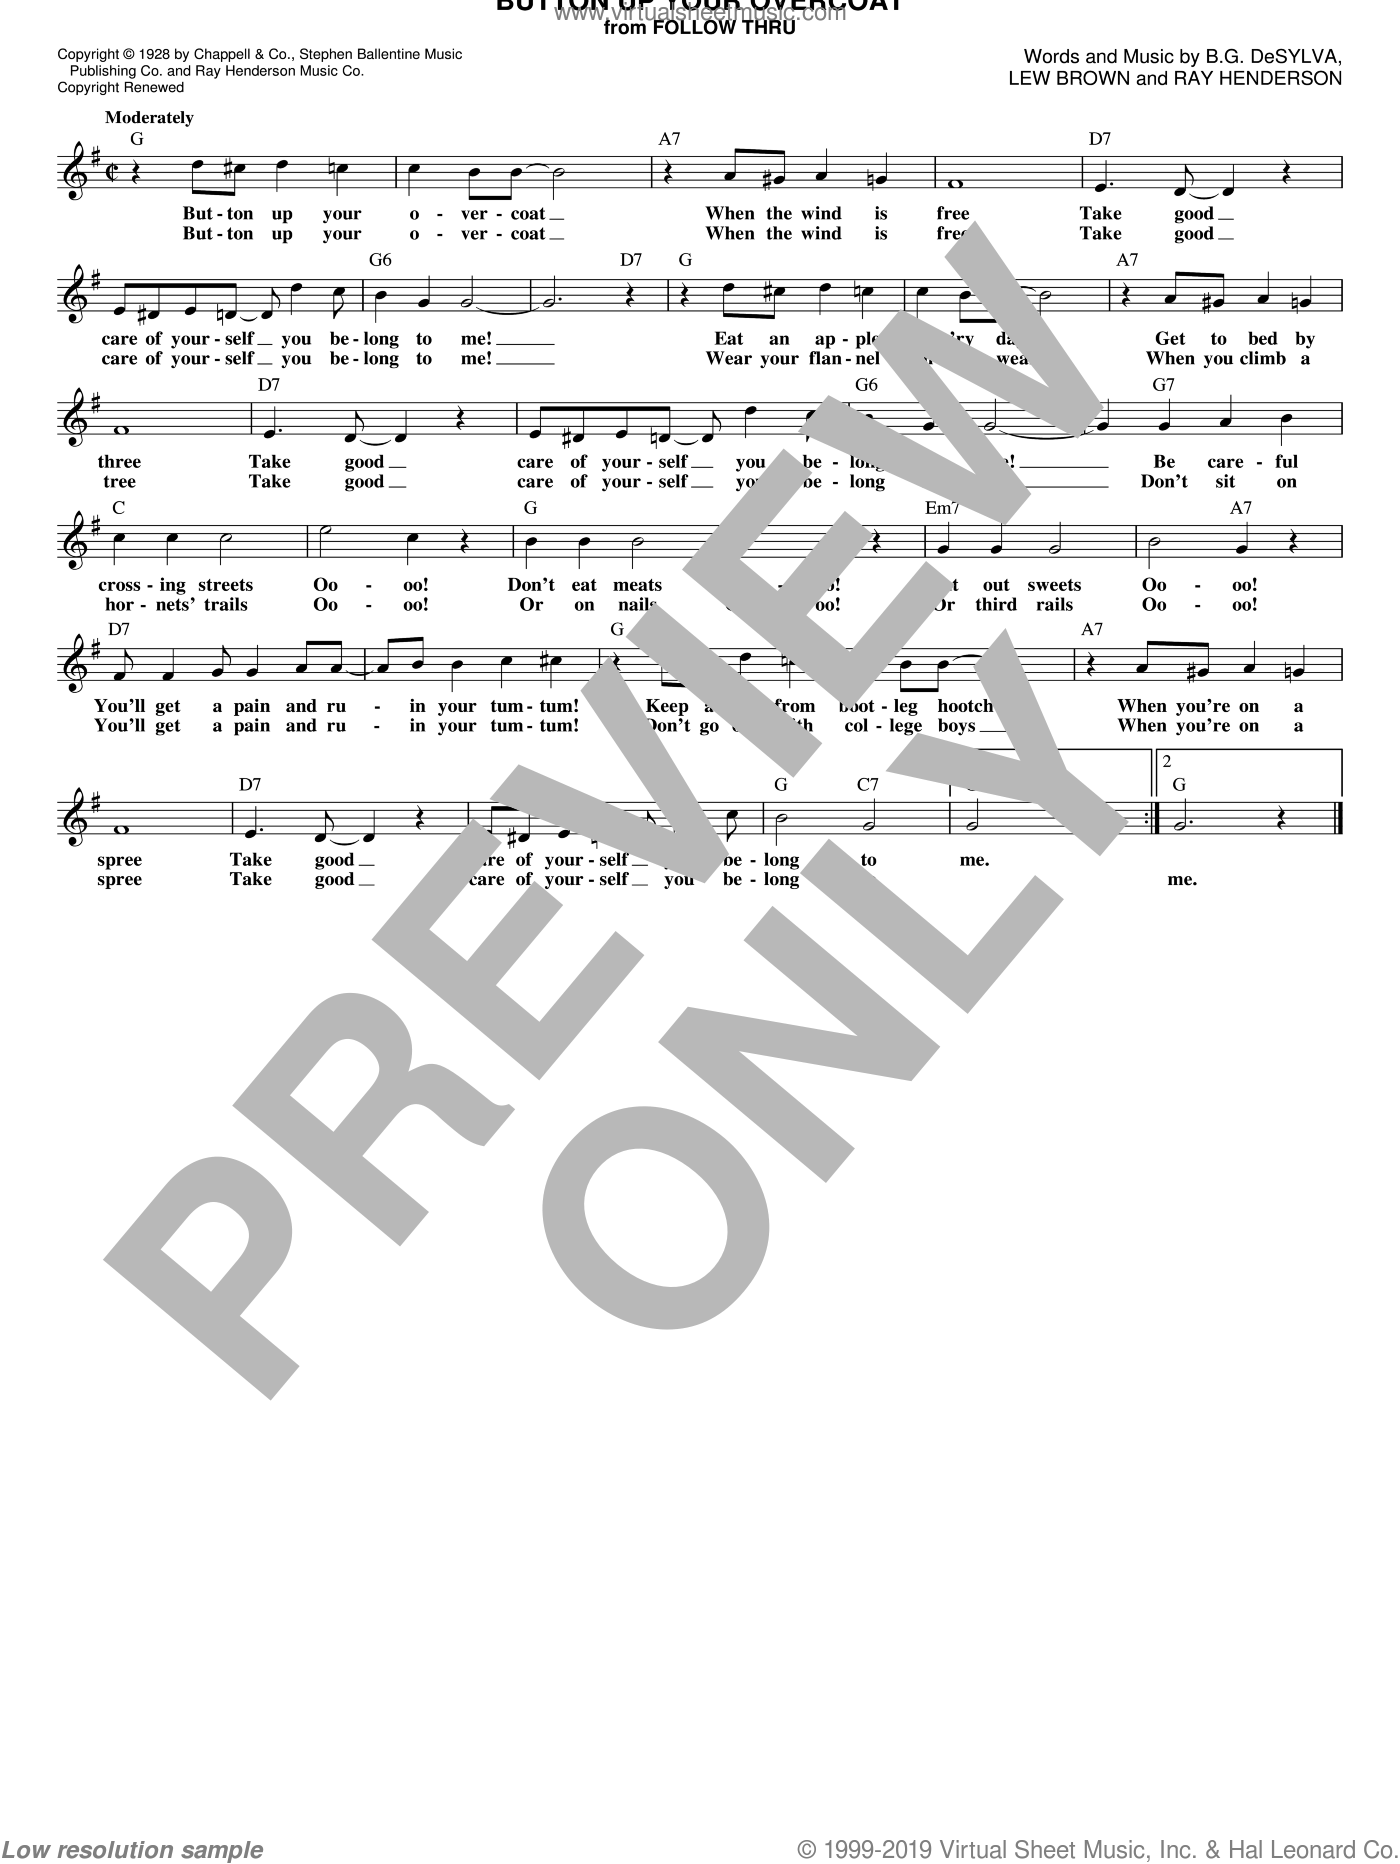 Button Up Your Overcoat sheet music for voice and other instruments (fake book) by Ray Henderson, Buddy DeSylva and Lew Brown, intermediate voice. Score Image Preview.